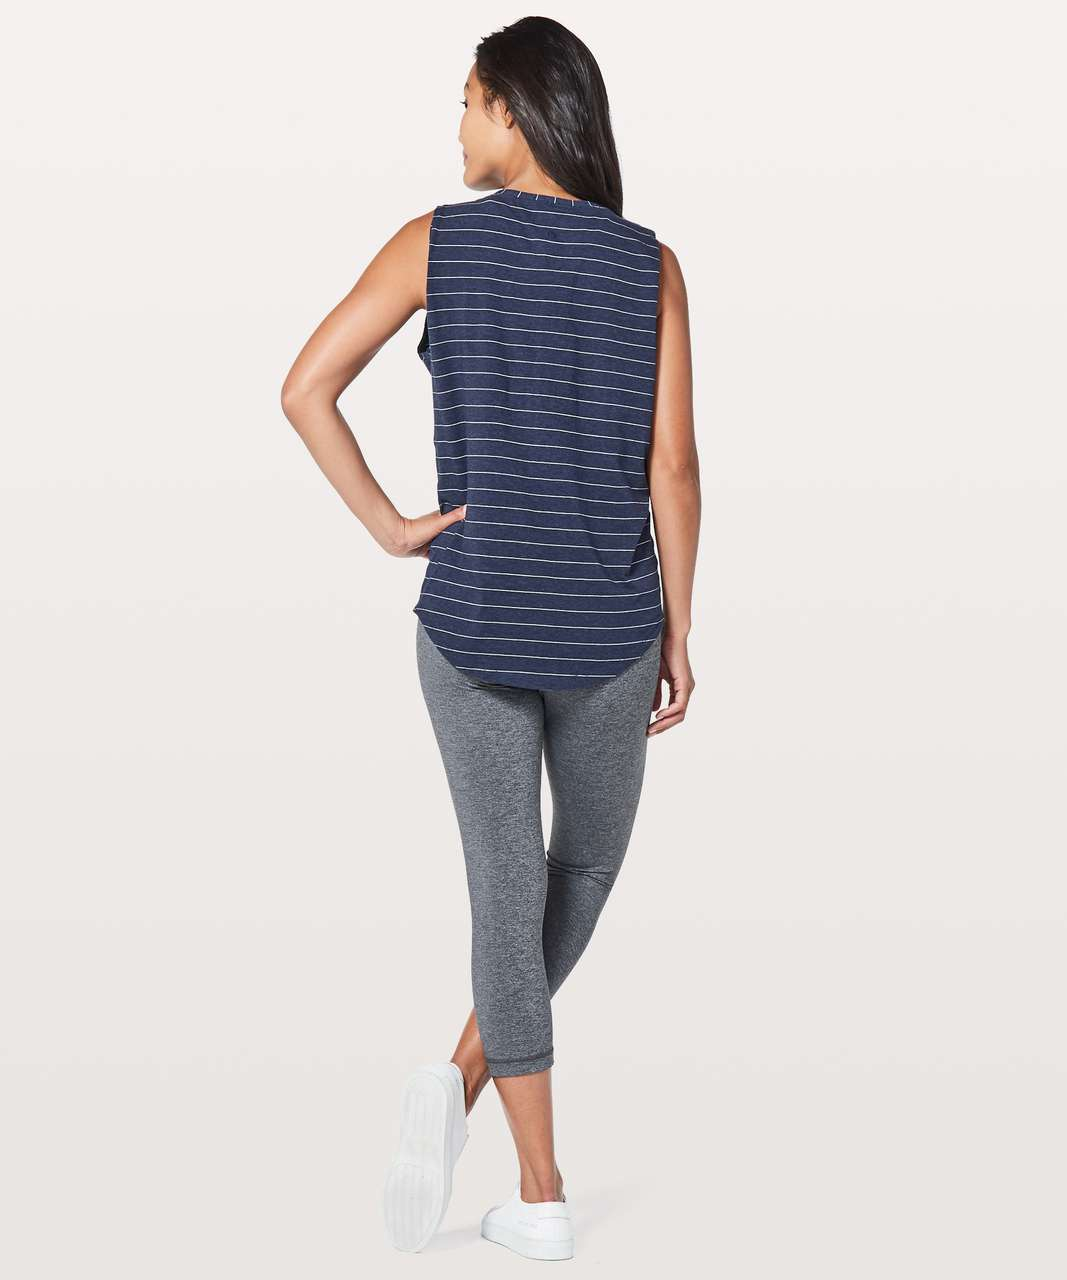 Lululemon Brunswick Muscle Tank - Short Serve Stripe Heathered Hero Blue White